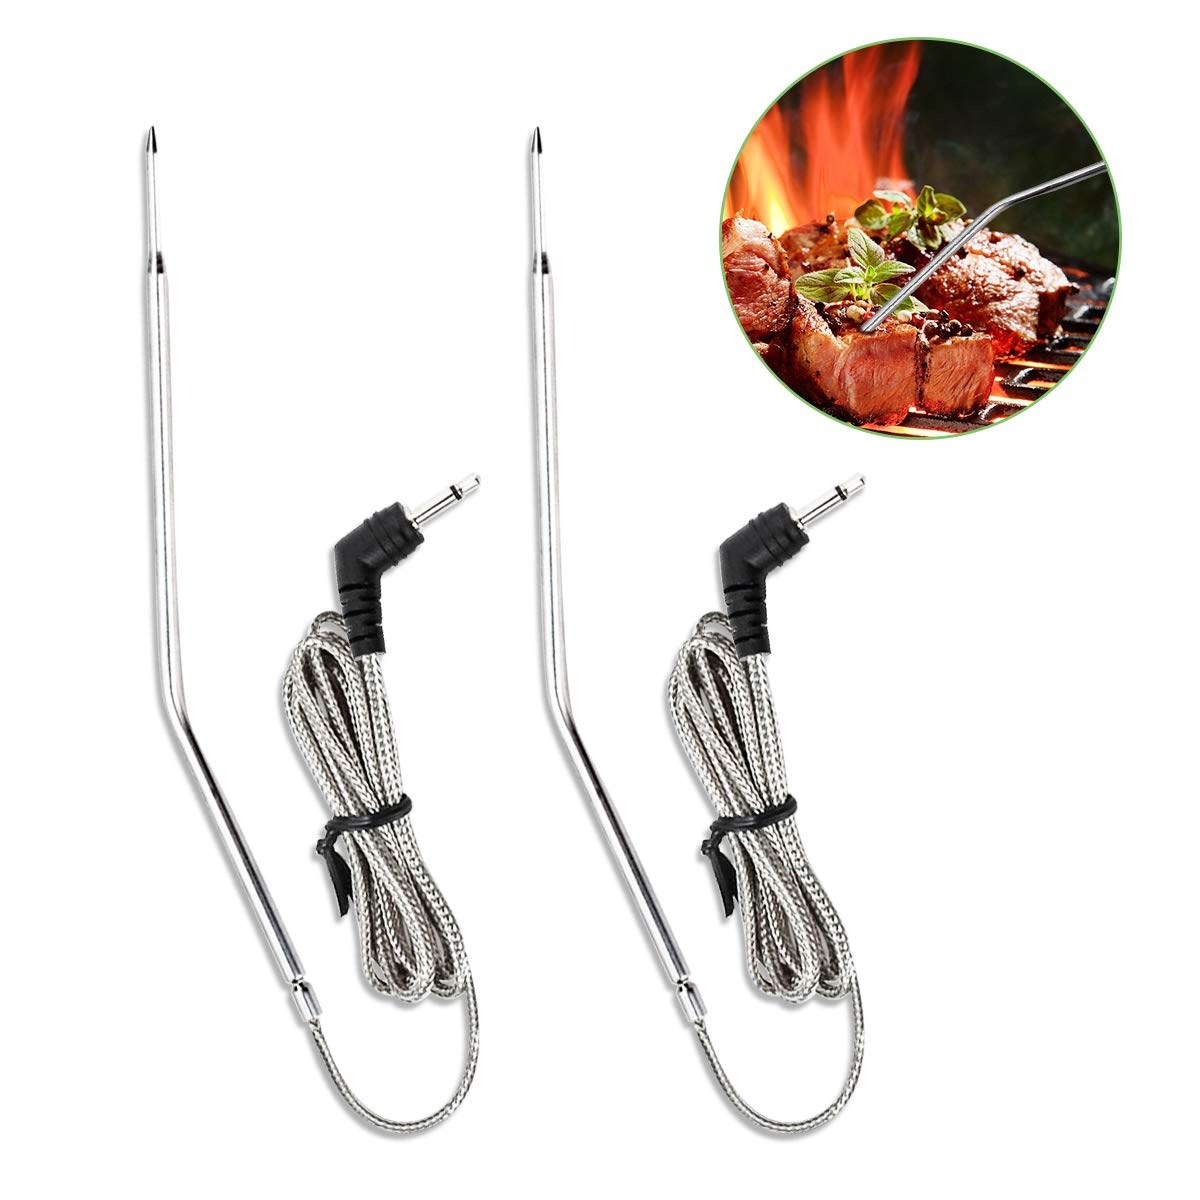 BBQ Thermometer Probe, Replacement Meat Thermometer Probe for Thermopro TP20, TP17, TP16, TP09, TP08, TP07, TP06s, TP04, AQHQUA Stainless Meat Probe High Temperature Resistant for Smoker, Grill, Oven AQHQUA -TZ2